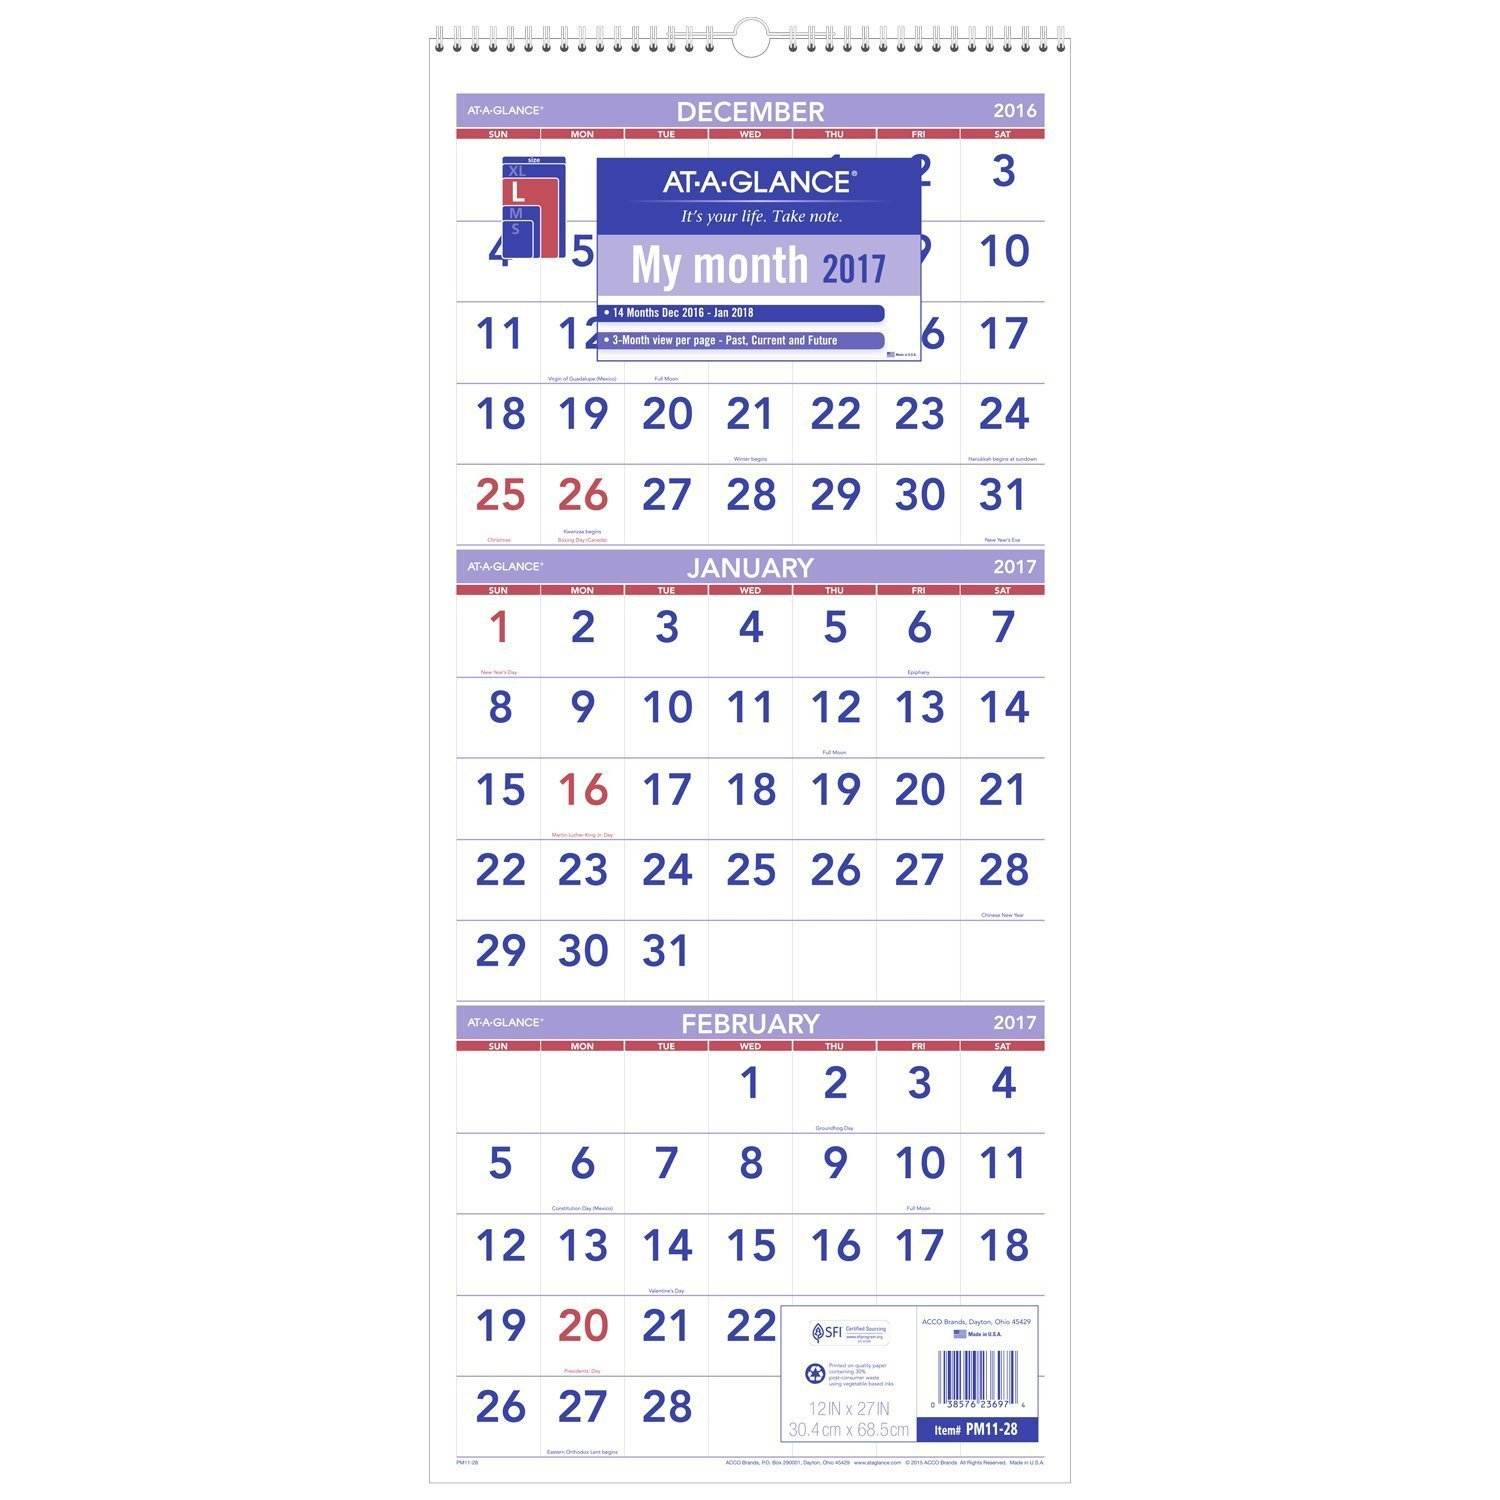 At-A-Glance Wall Calendar, 2018, December 2017 - January 2019, 3 3 Month Wall Calendar 2019